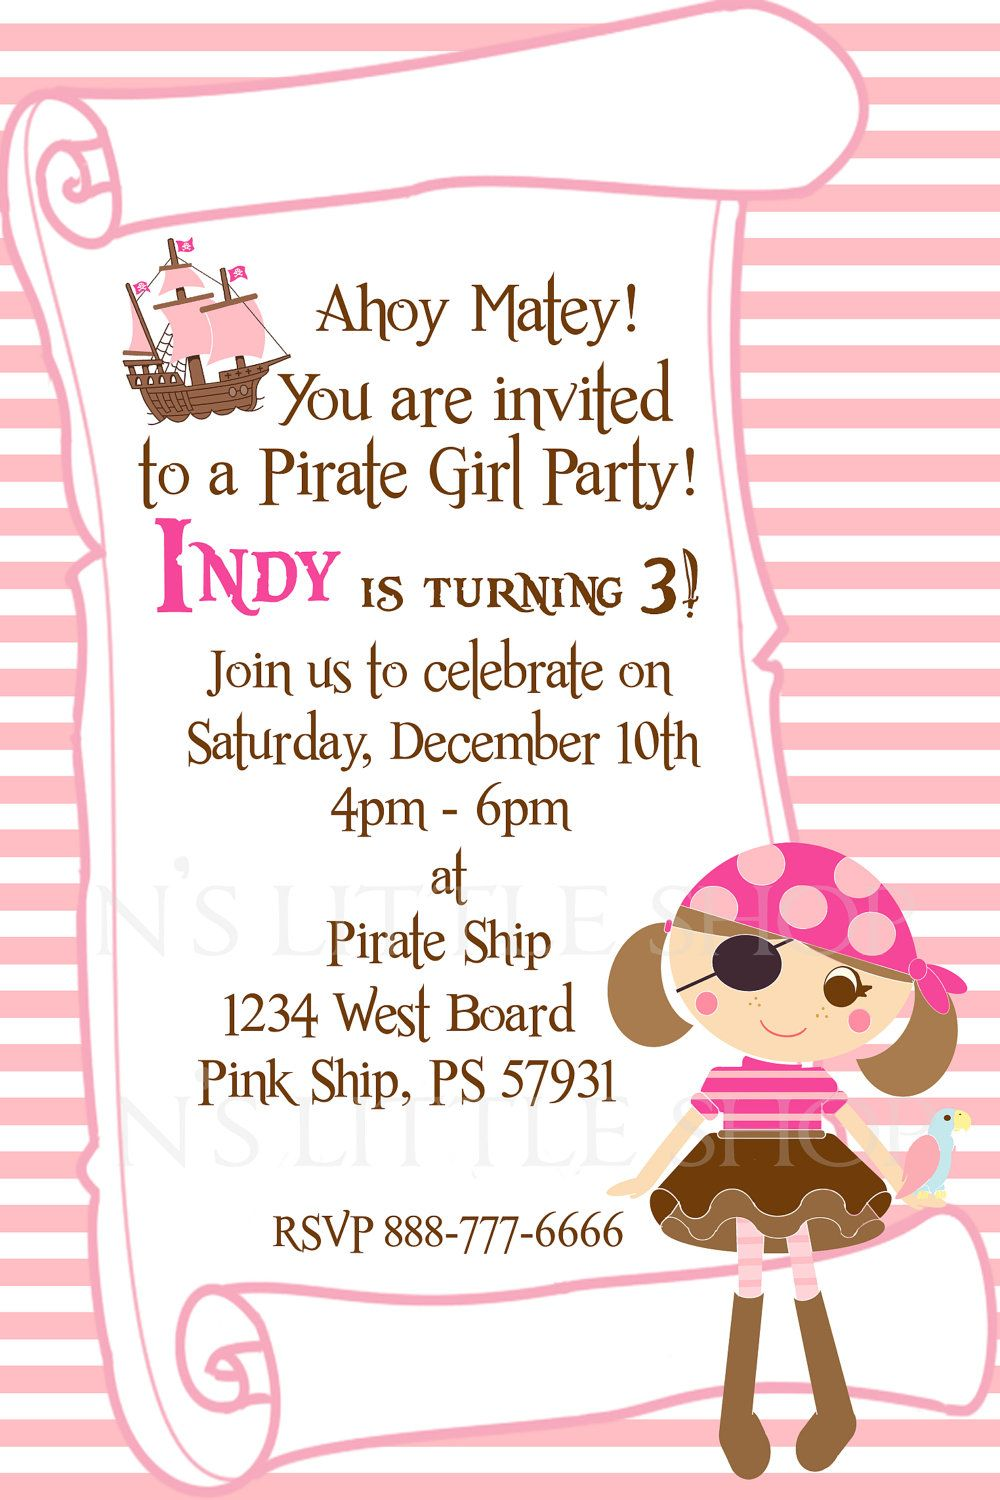 Pirate girl party invitation card for a girl customize printable pirate girl party invitation card for a girl customize printable 1000 via stopboris Image collections